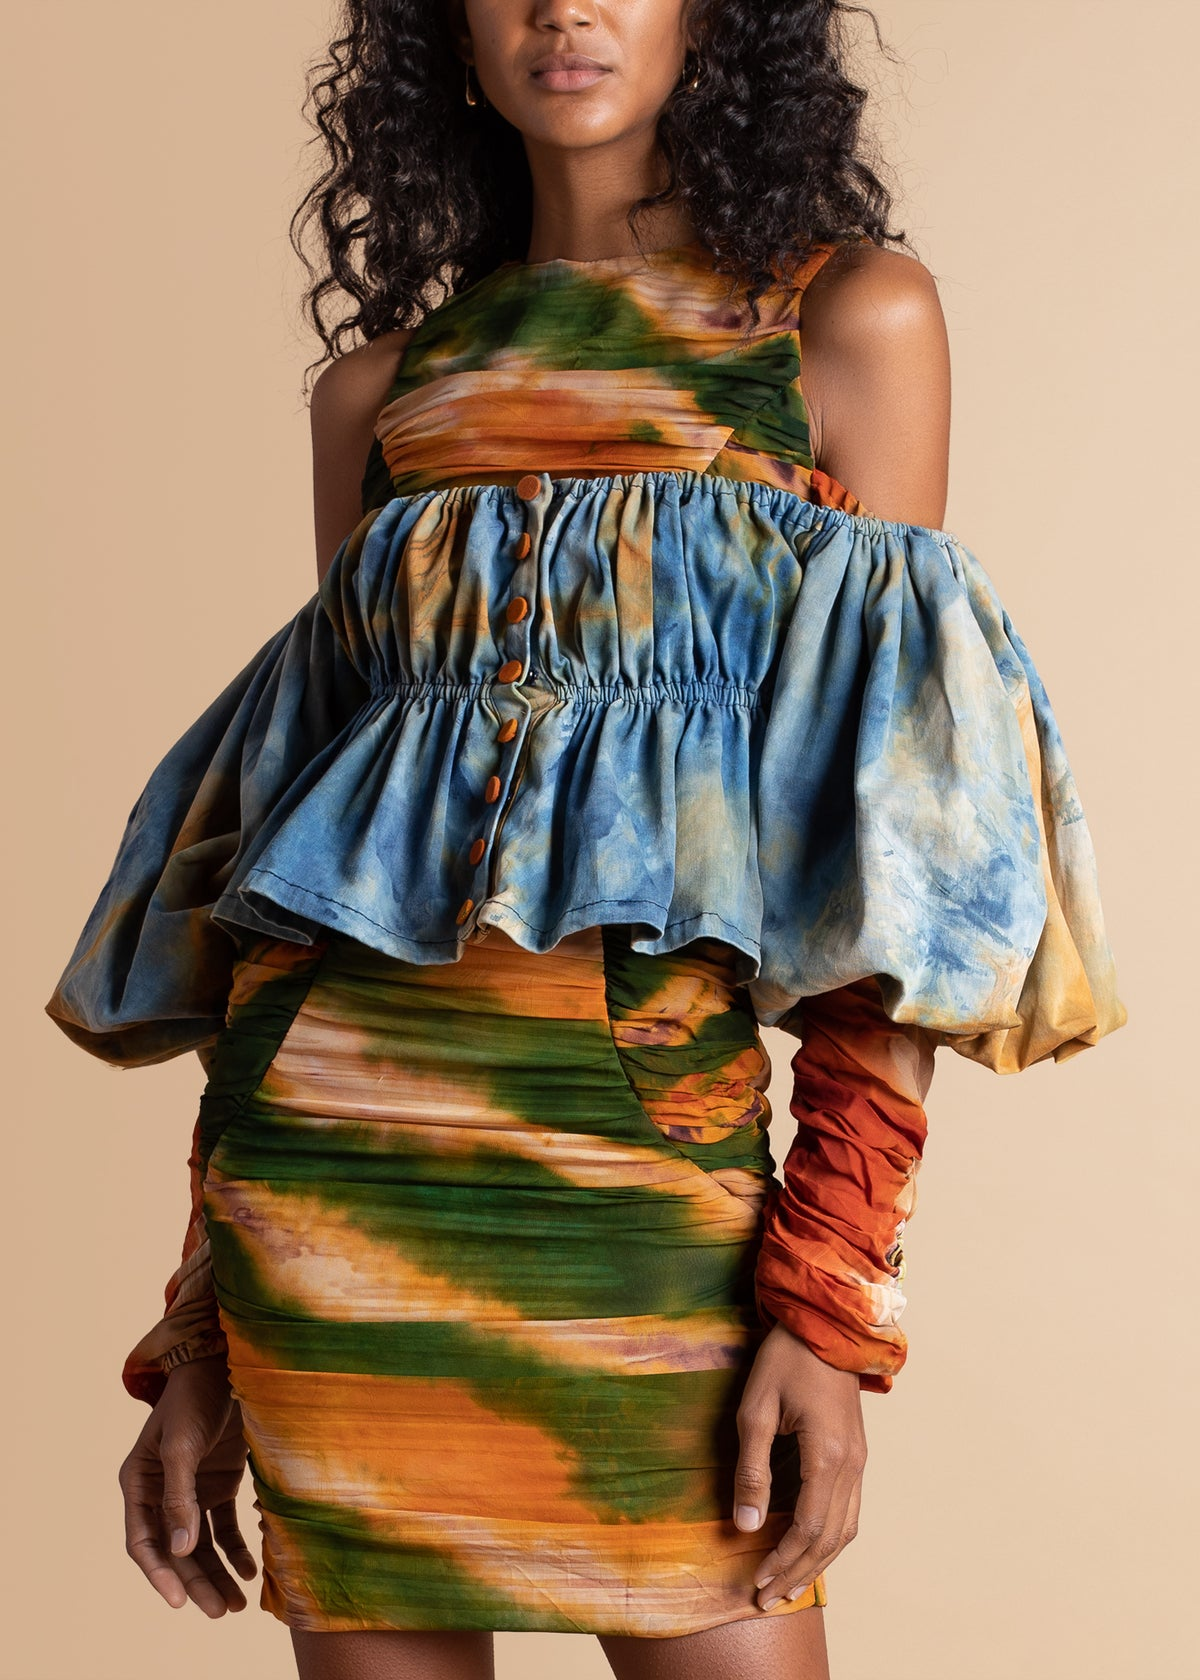 Chiffon Dress With Overlaying Ball Sleeves Crop Top by Mazelle Studio